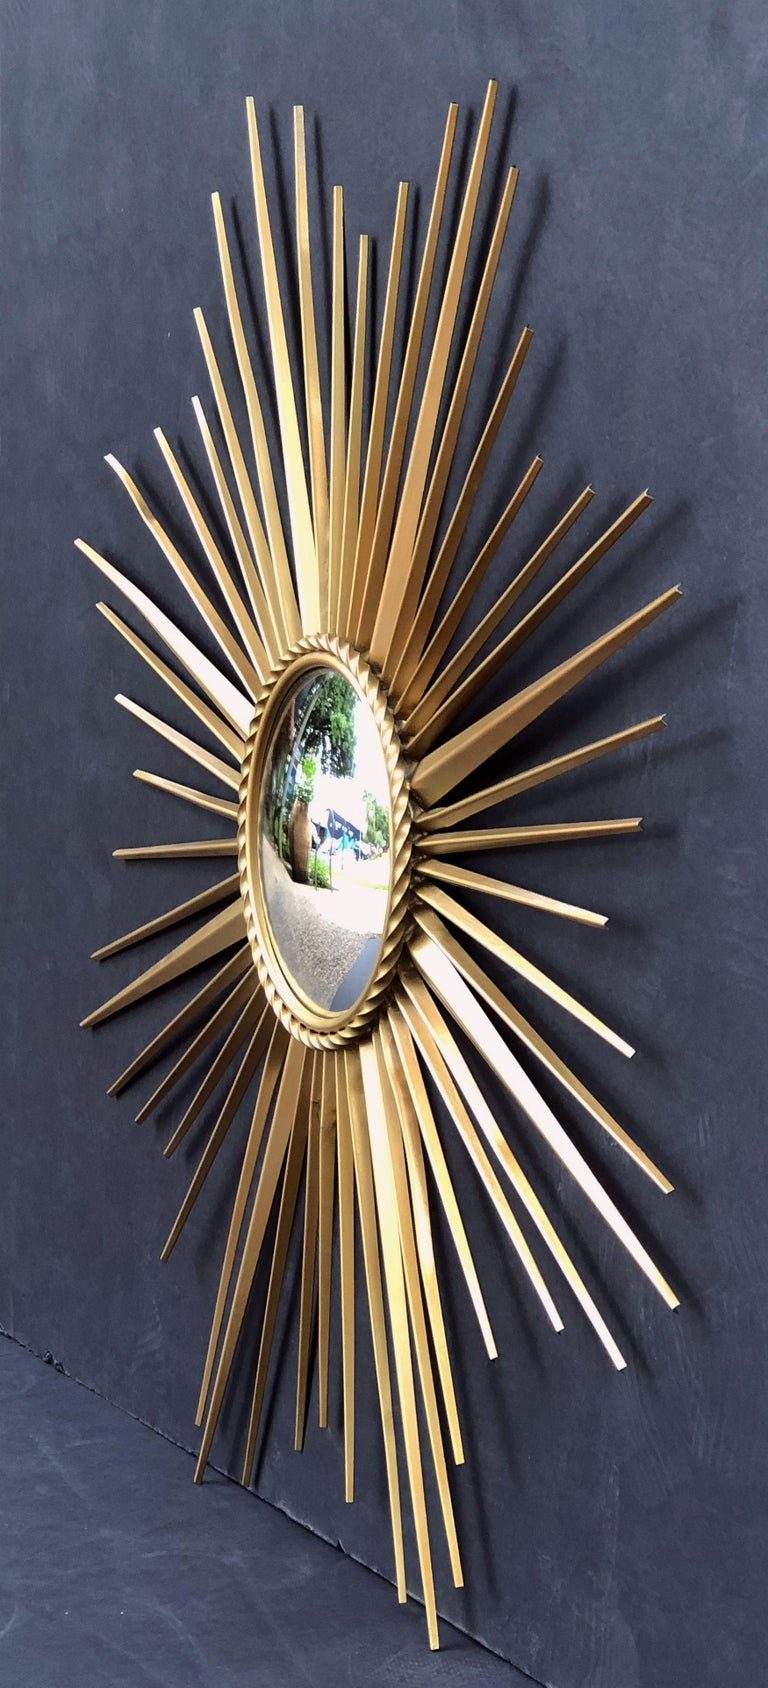 French Gilt Metal Sunburst or Starburst Mirror by Chaty Vallauris (Dia 33 3/4) In Good Condition For Sale In Austin, TX